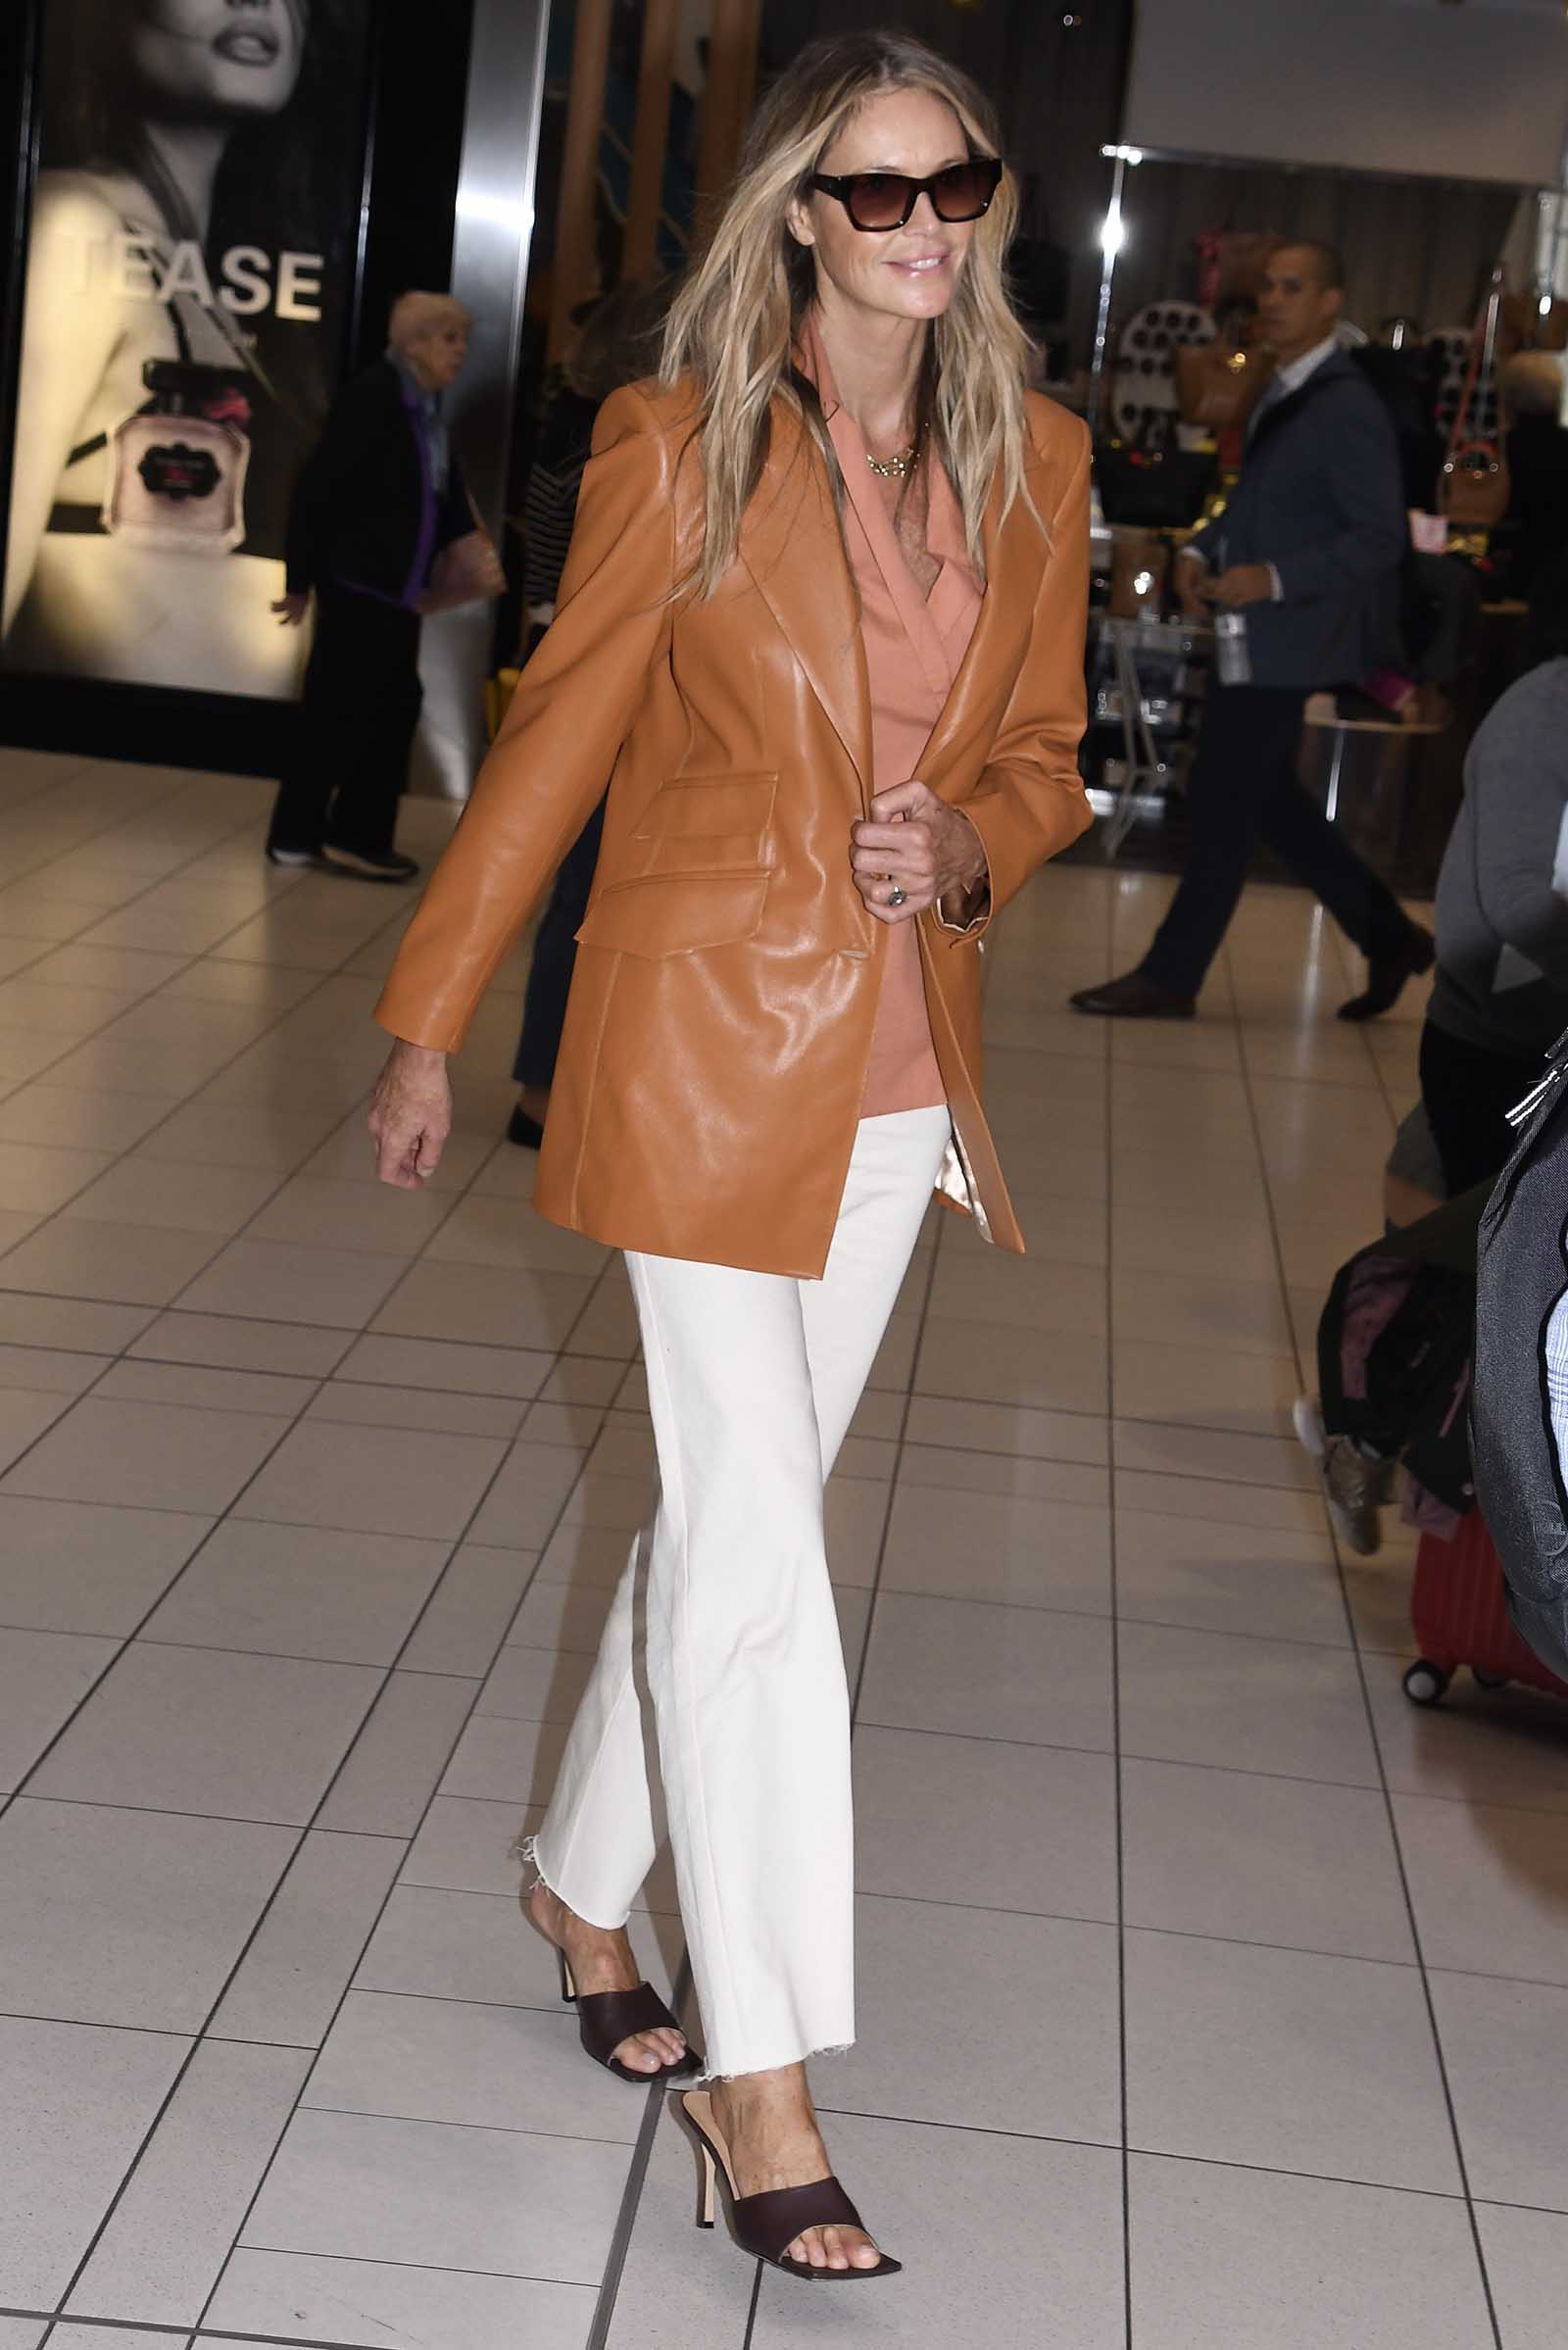 Elle Macpherson serves style in a brown leather jacket and wide leg pants!